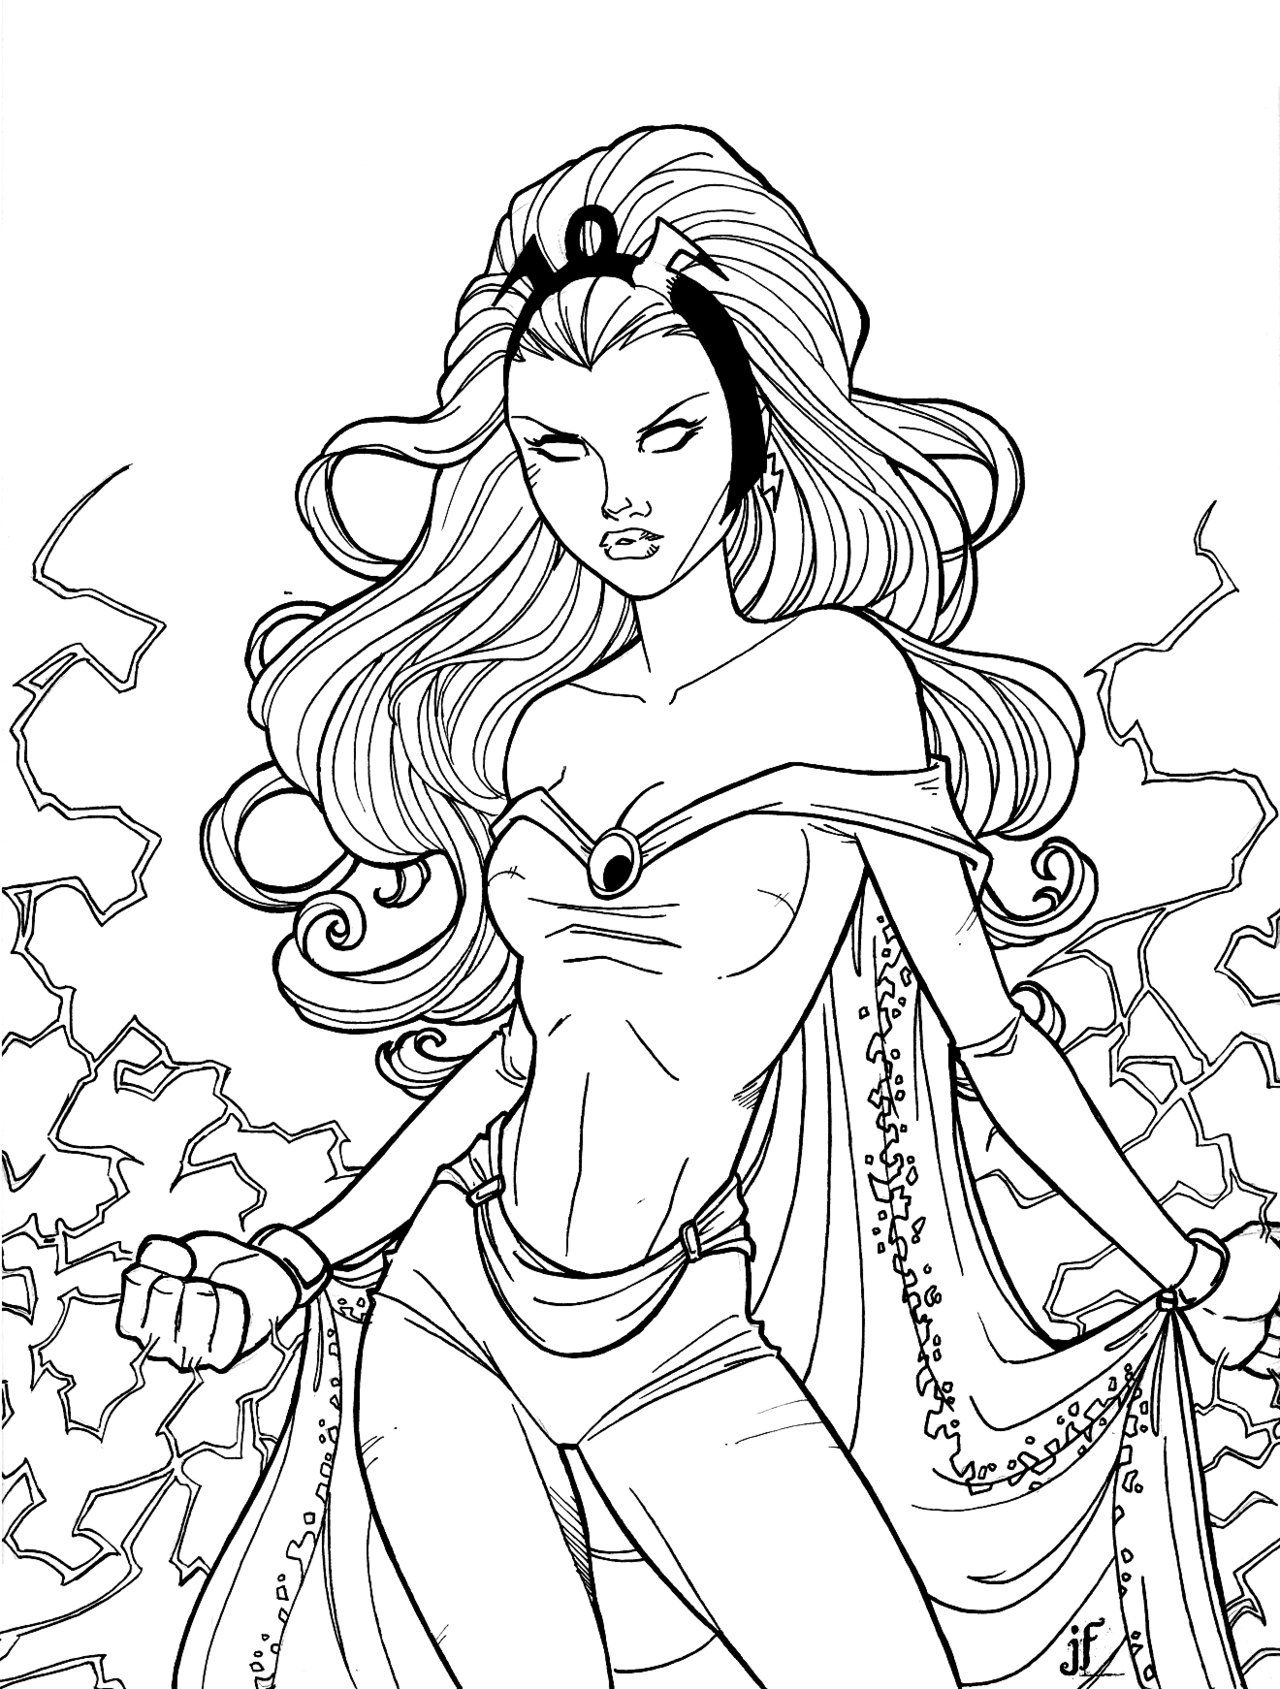 Storm superhero coloring pages download and print for free | adult ...